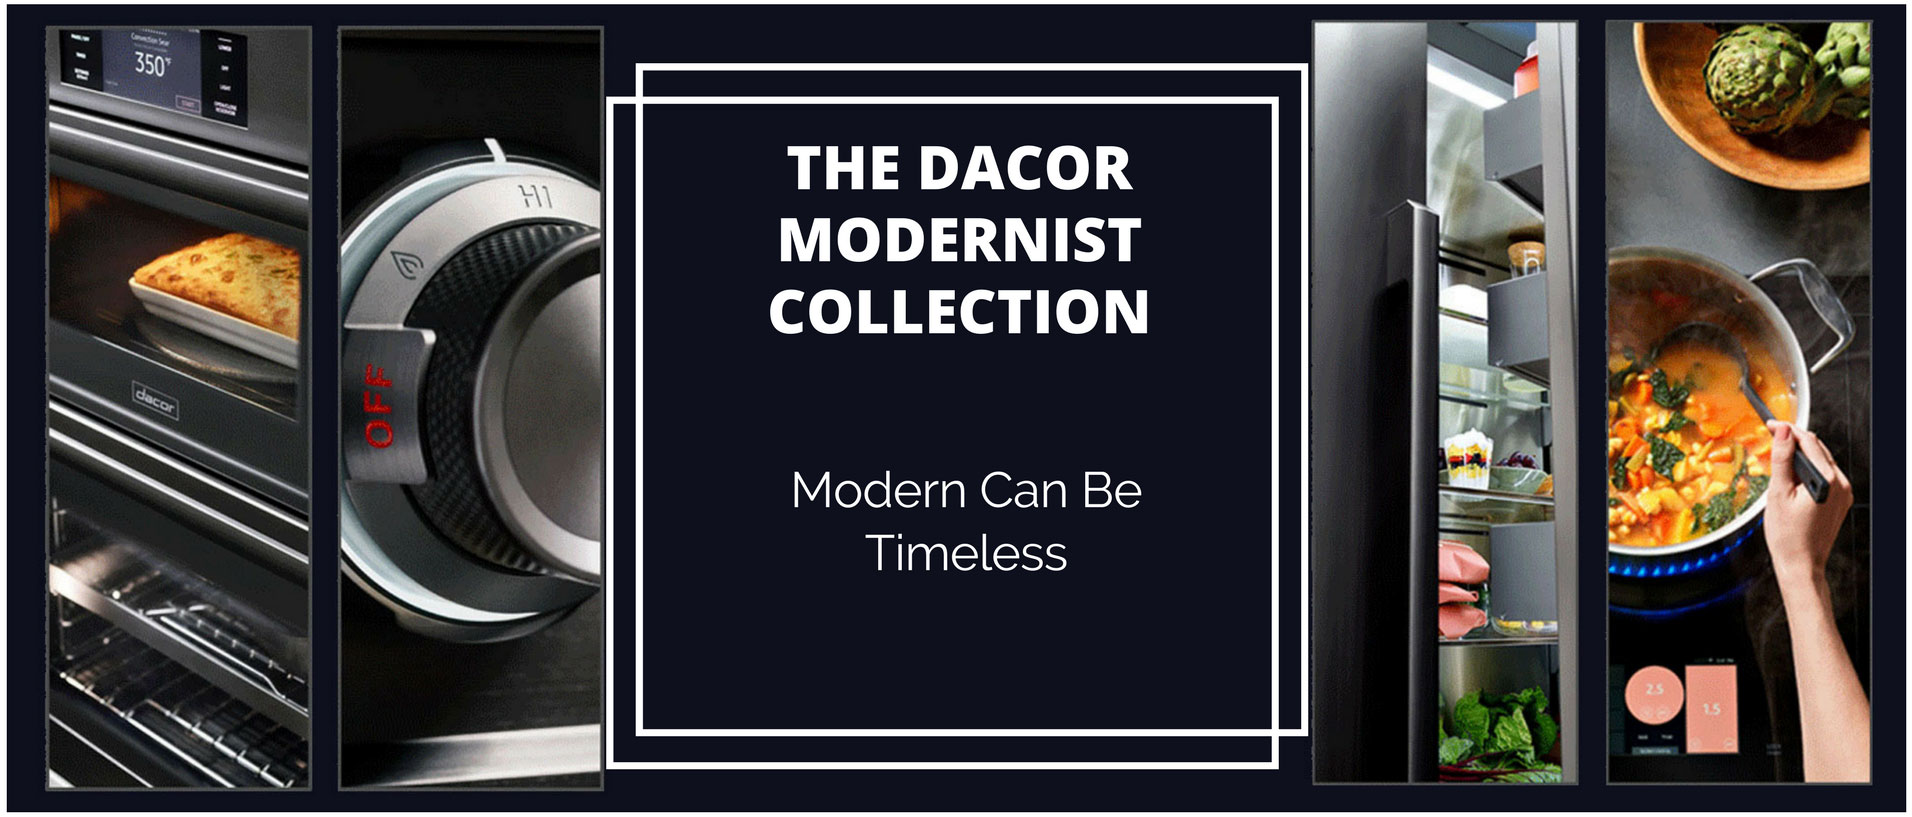 Dacor Modernist Collection